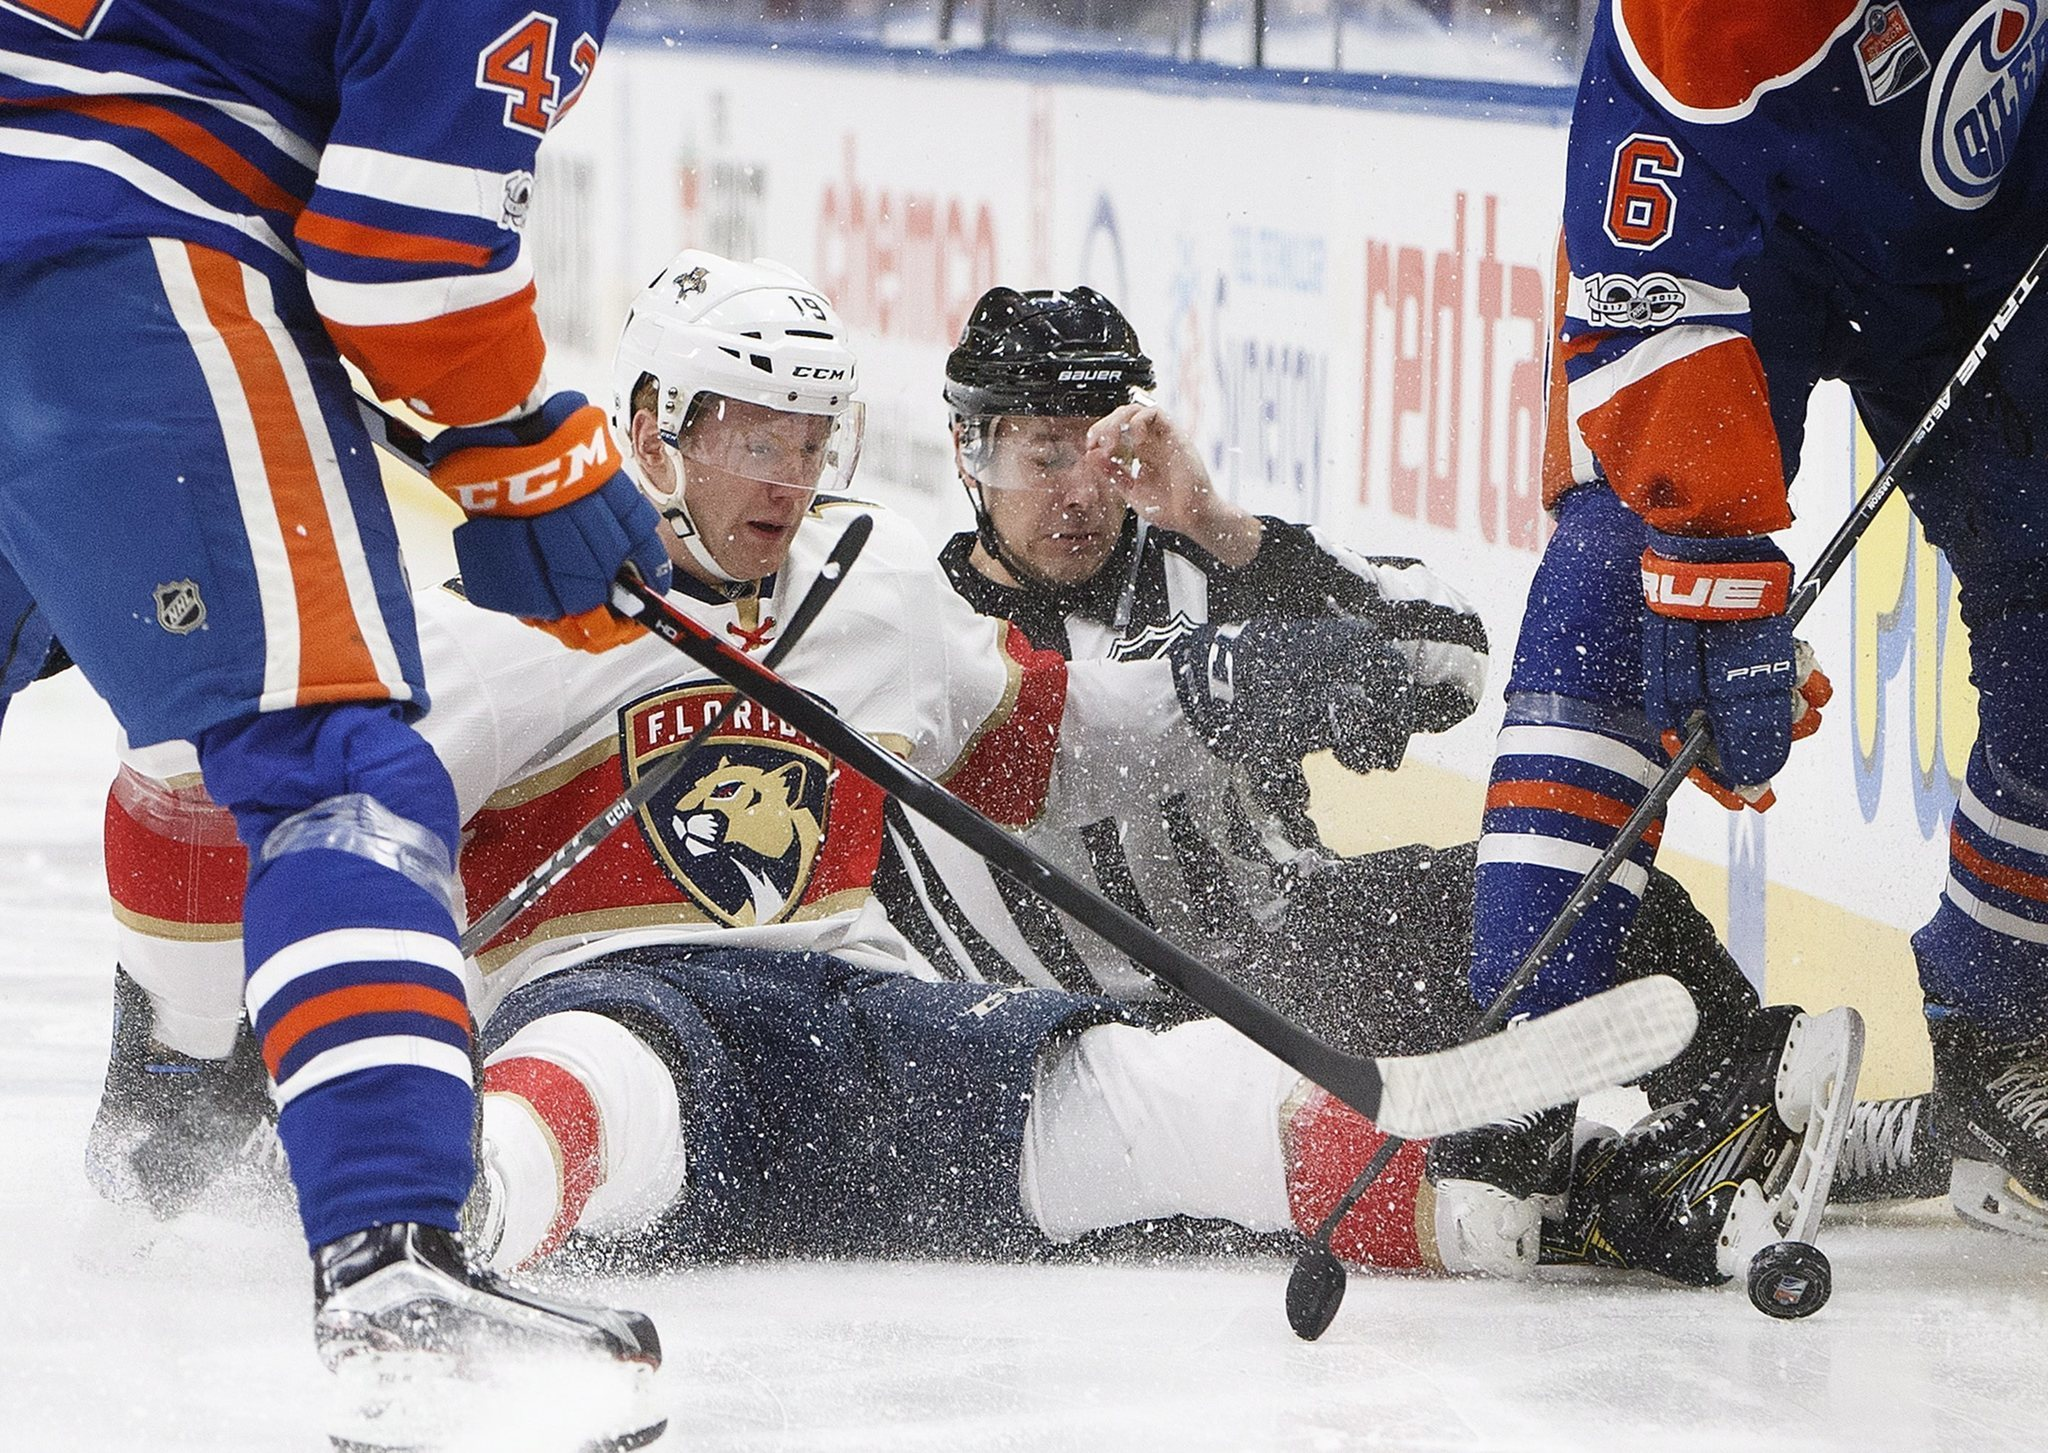 Sfl-panthers-rally-from-2-0-deficit-blow-3-2-lead-lose-in-edmonton-with-2-6-seconds-left-in-ot-20170118